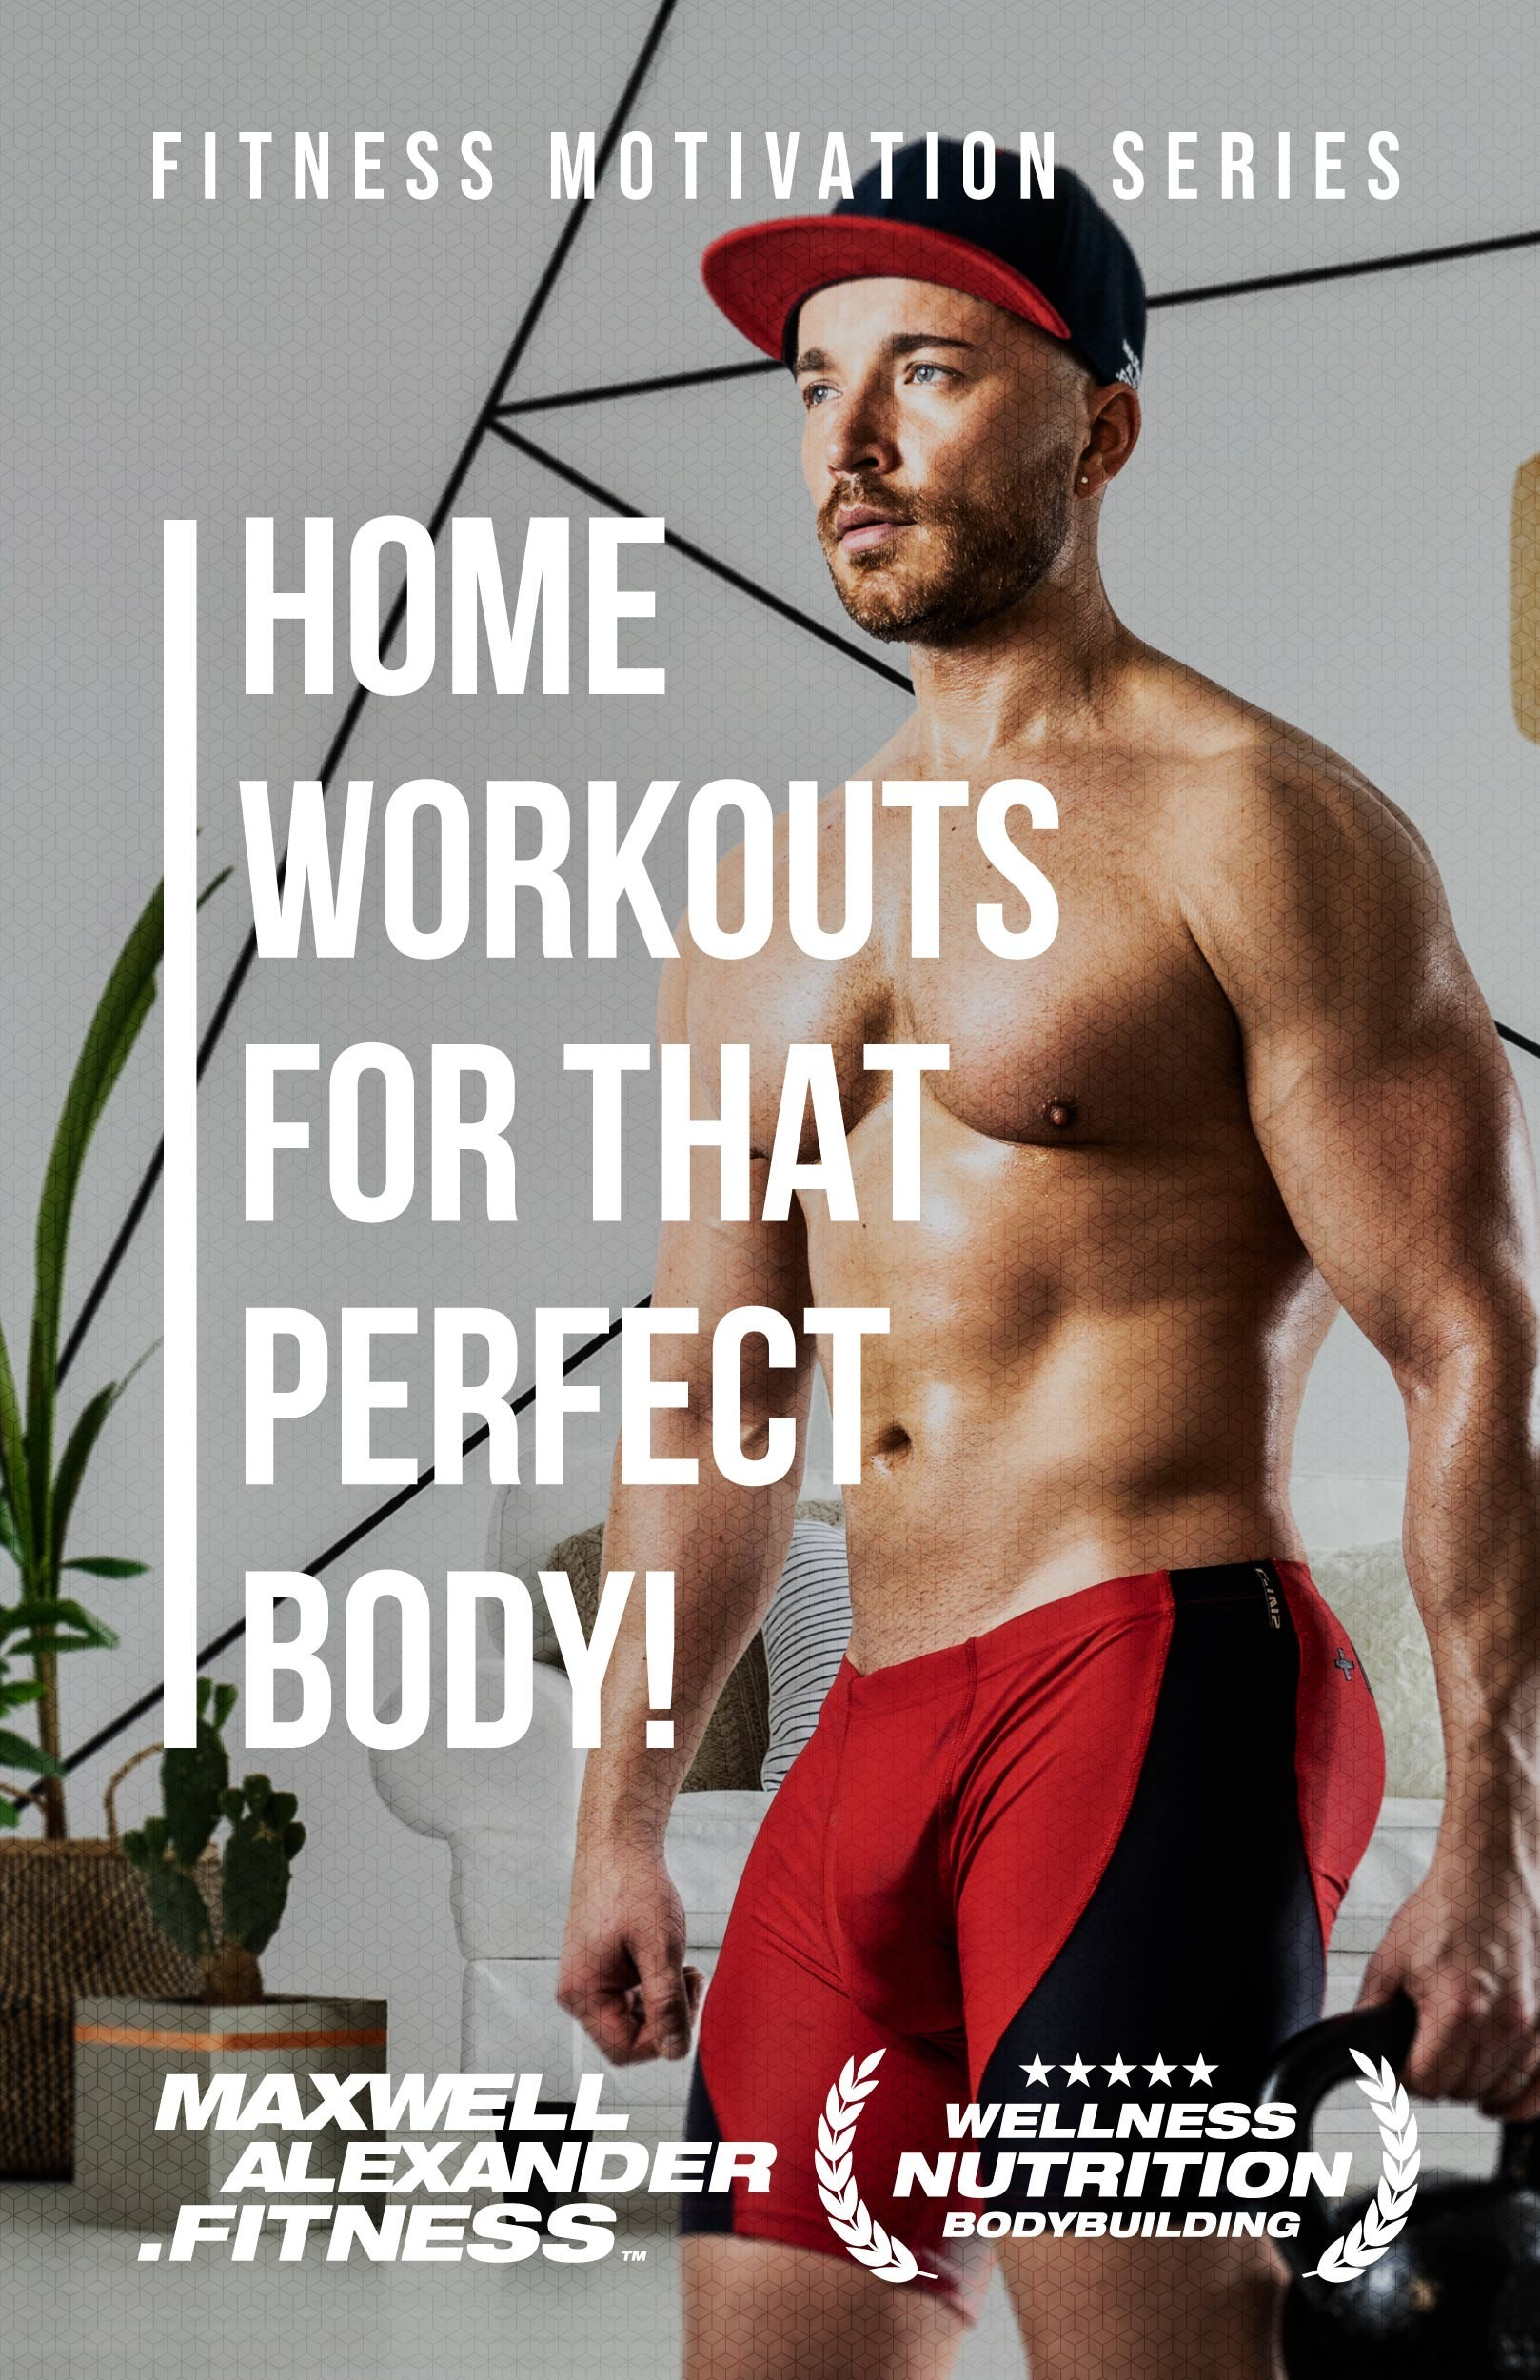 Home workouts for that perfect body – New fitness motivation book by Maxwell Alexander